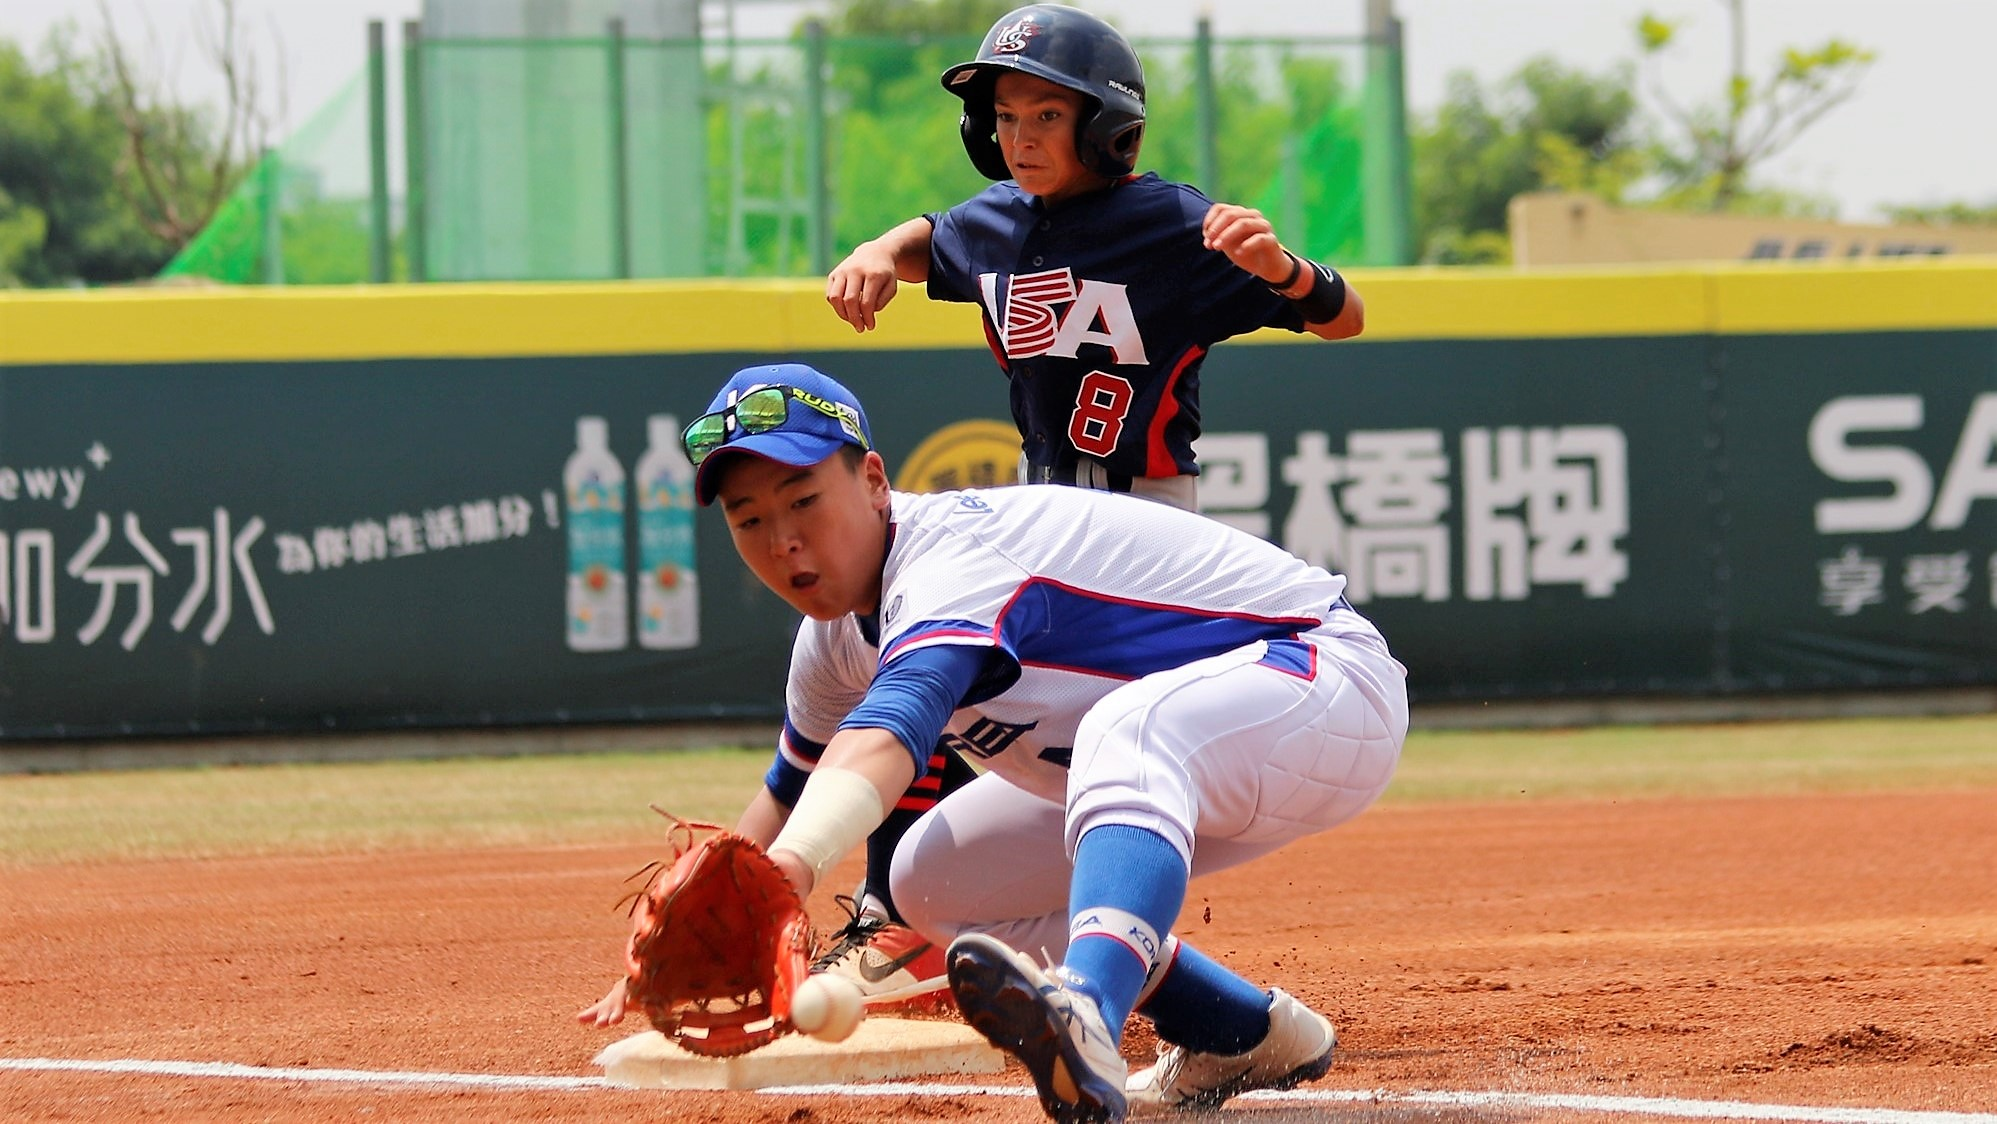 Lee Jaewon gets on base against the USA